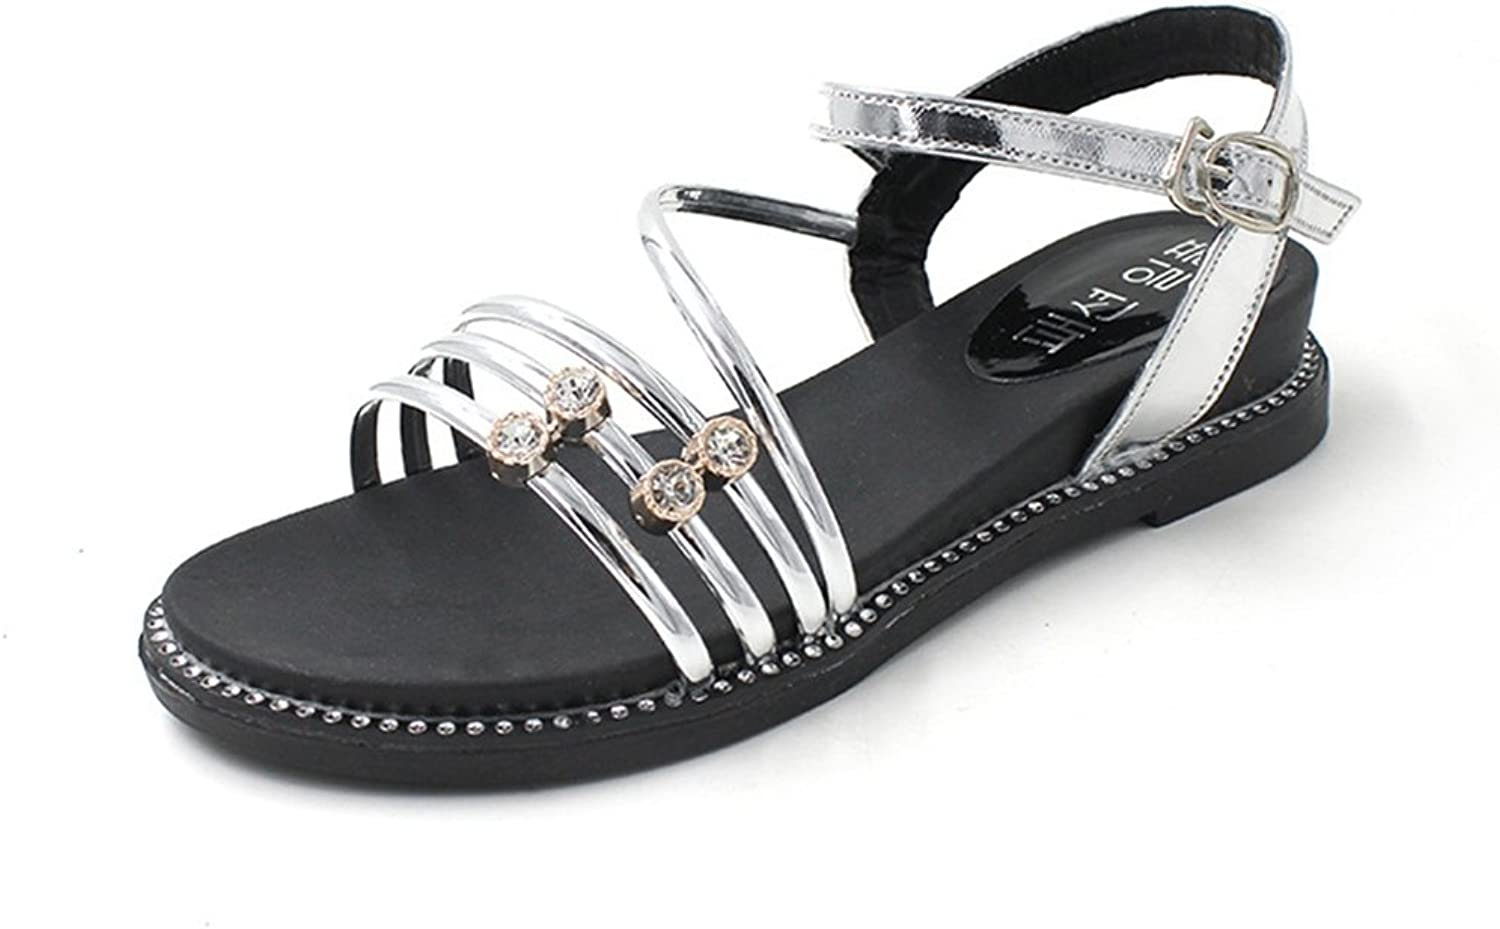 Sparkling Rhinestone Flat Sandals for Womens Fashion Summer Low Heels Ankle Strap Beach shoes